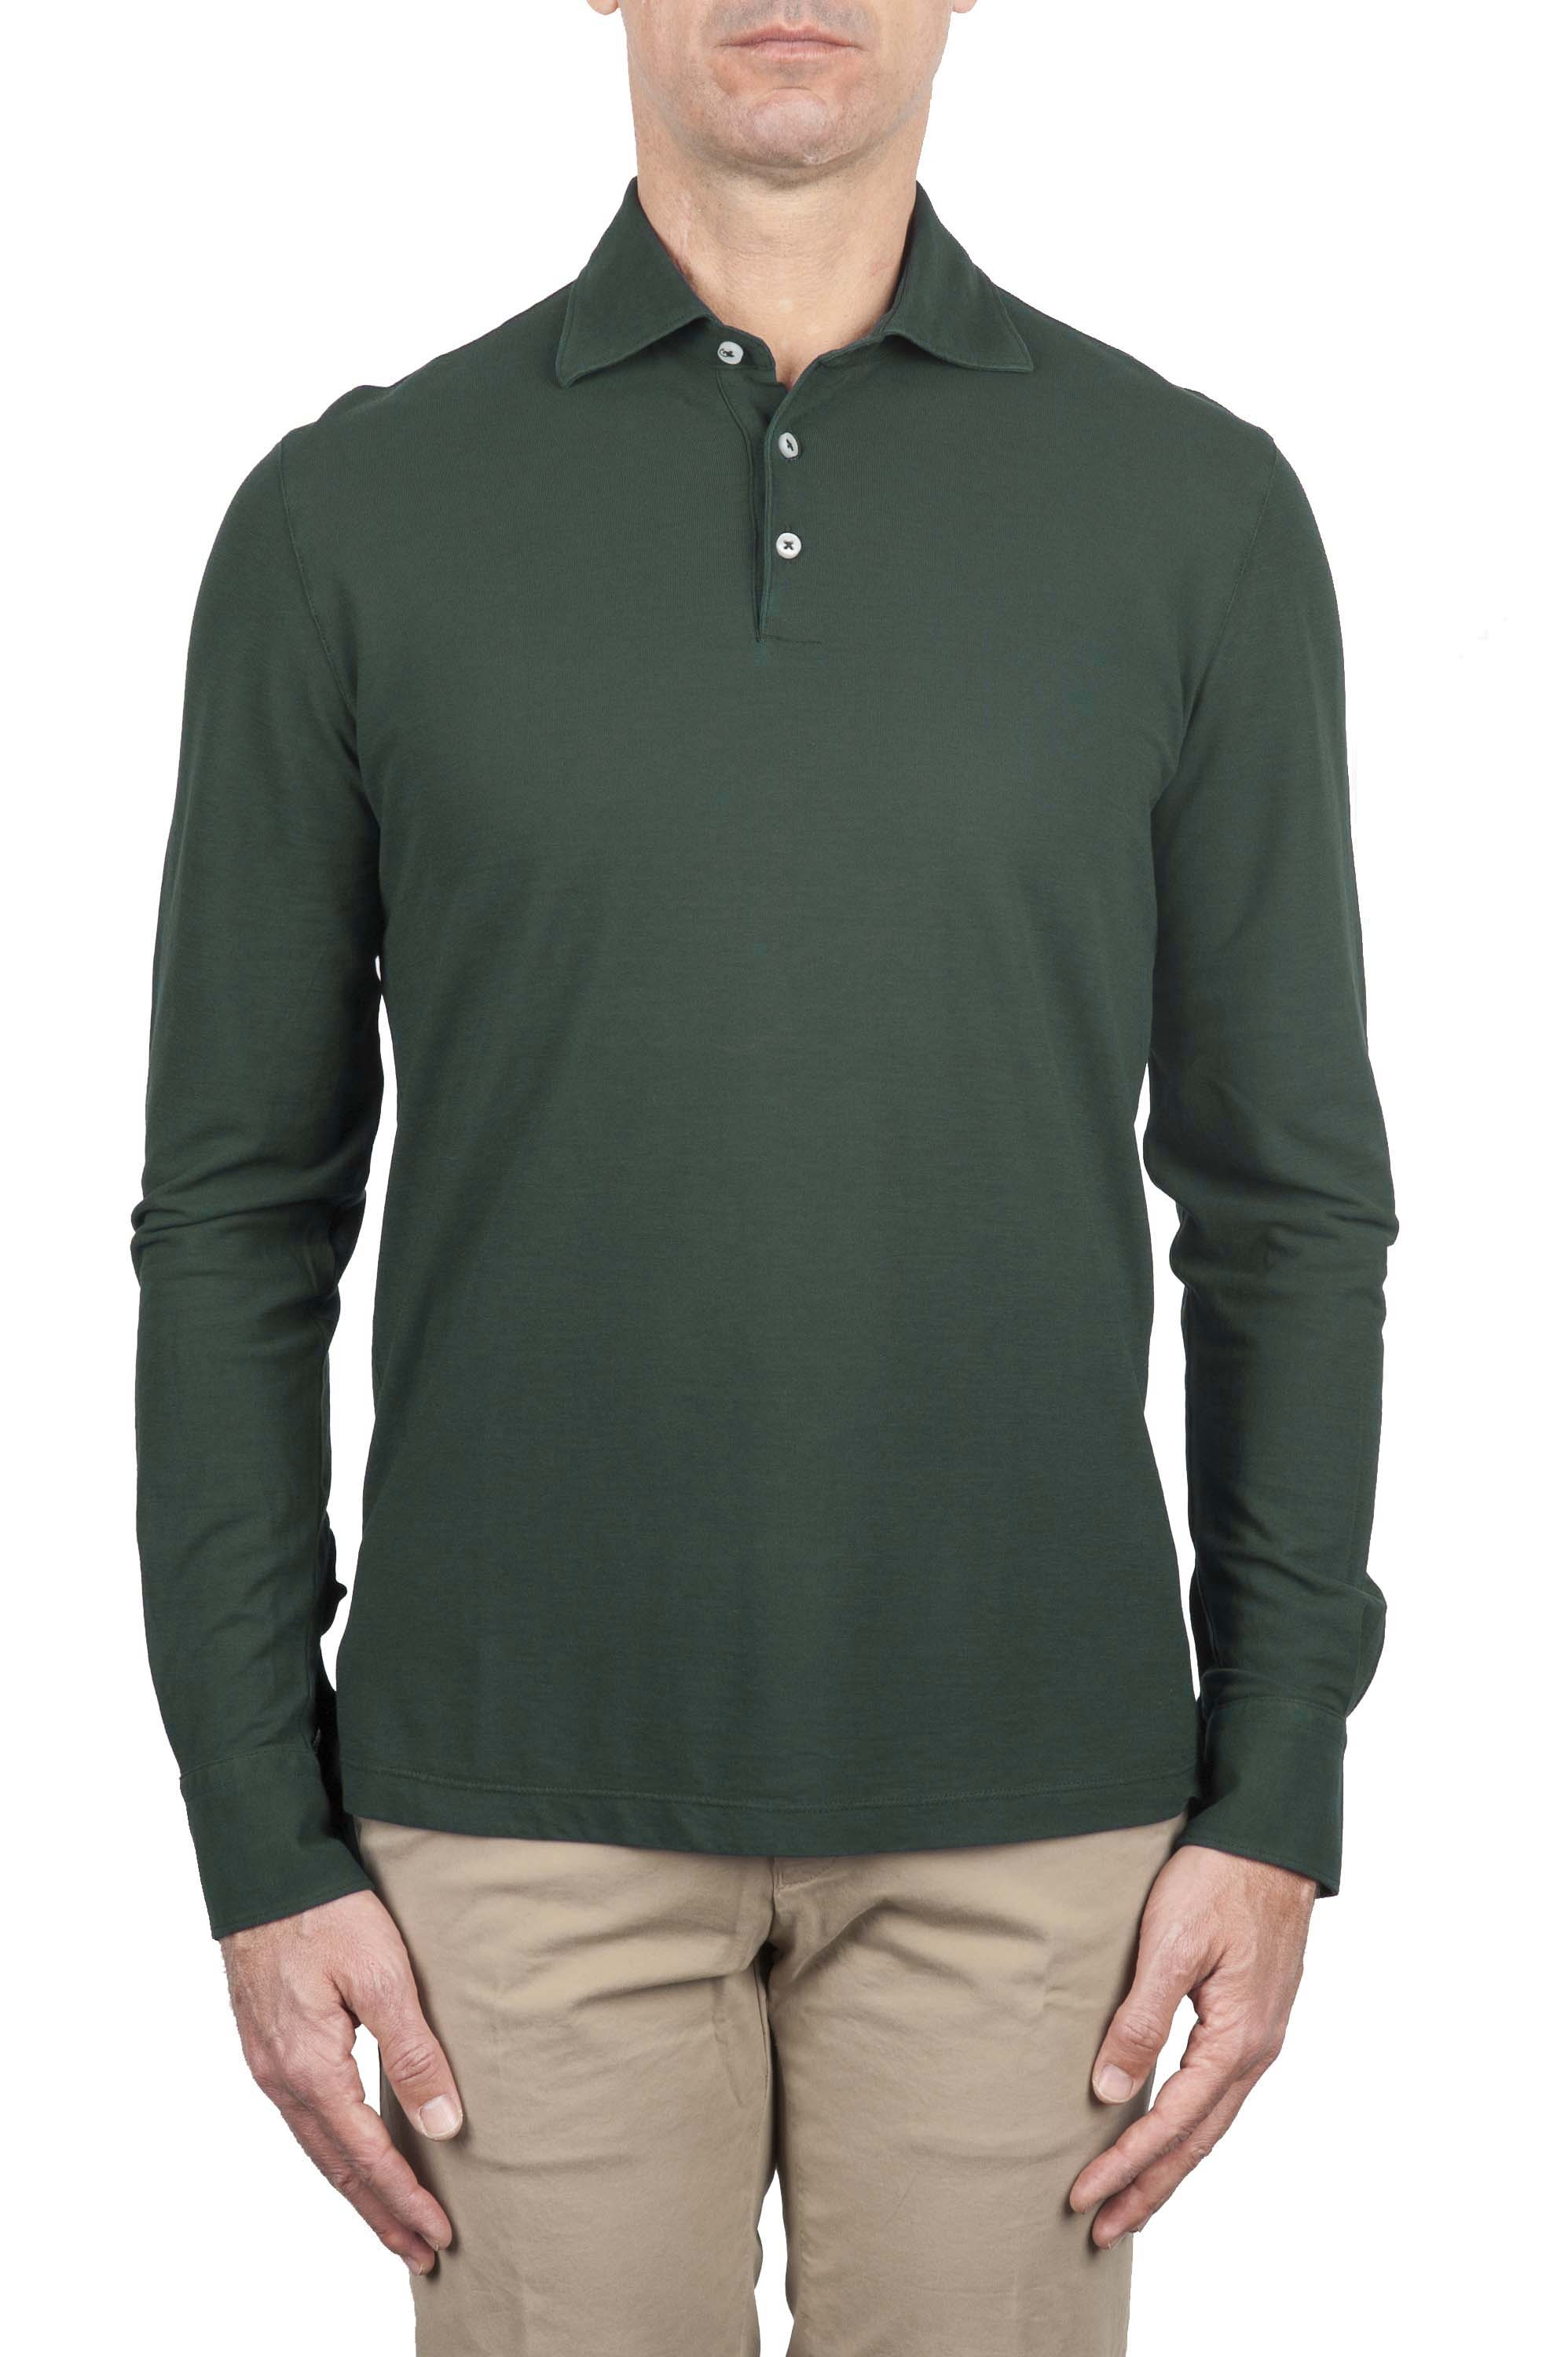 SBU 01715 Classic long sleeve green cotton crepe polo shirt 01